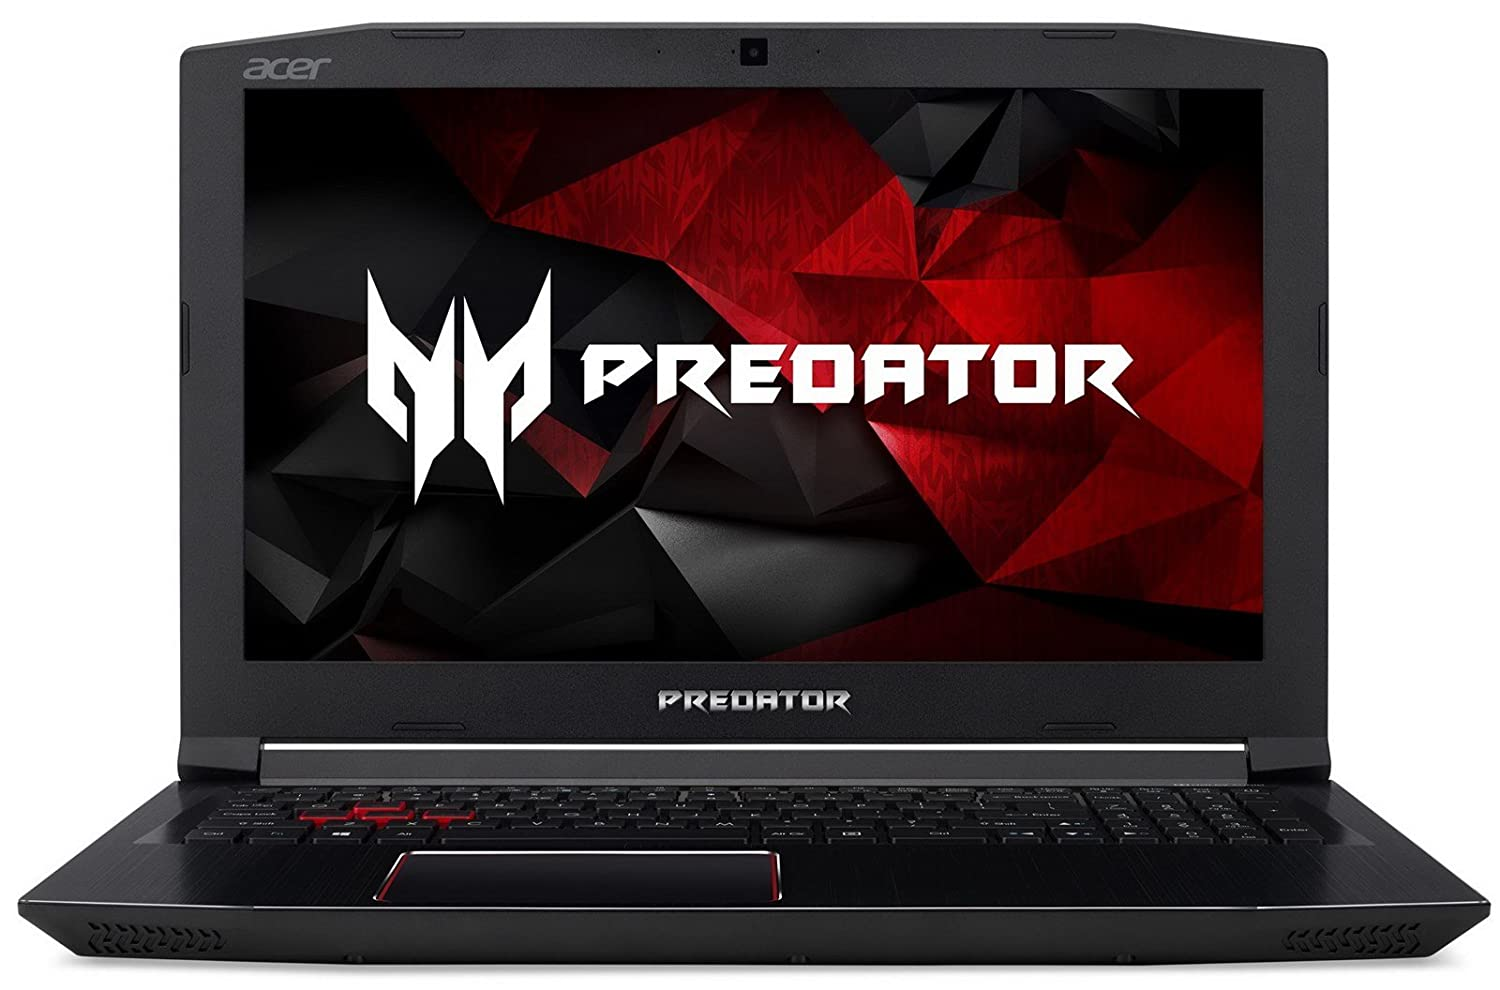 2019 Acer Predator Helios 300 15.6 FHD Backlit Keyboard Gaming Laptop Computer, Intel Quad-Core i7-7700HQ Up to 3.8GHz, NVIDIA GeForce GTX 1060, 32GB DDR4, 1TB SSD, 802.11ac, Bluetooth, Windows 10